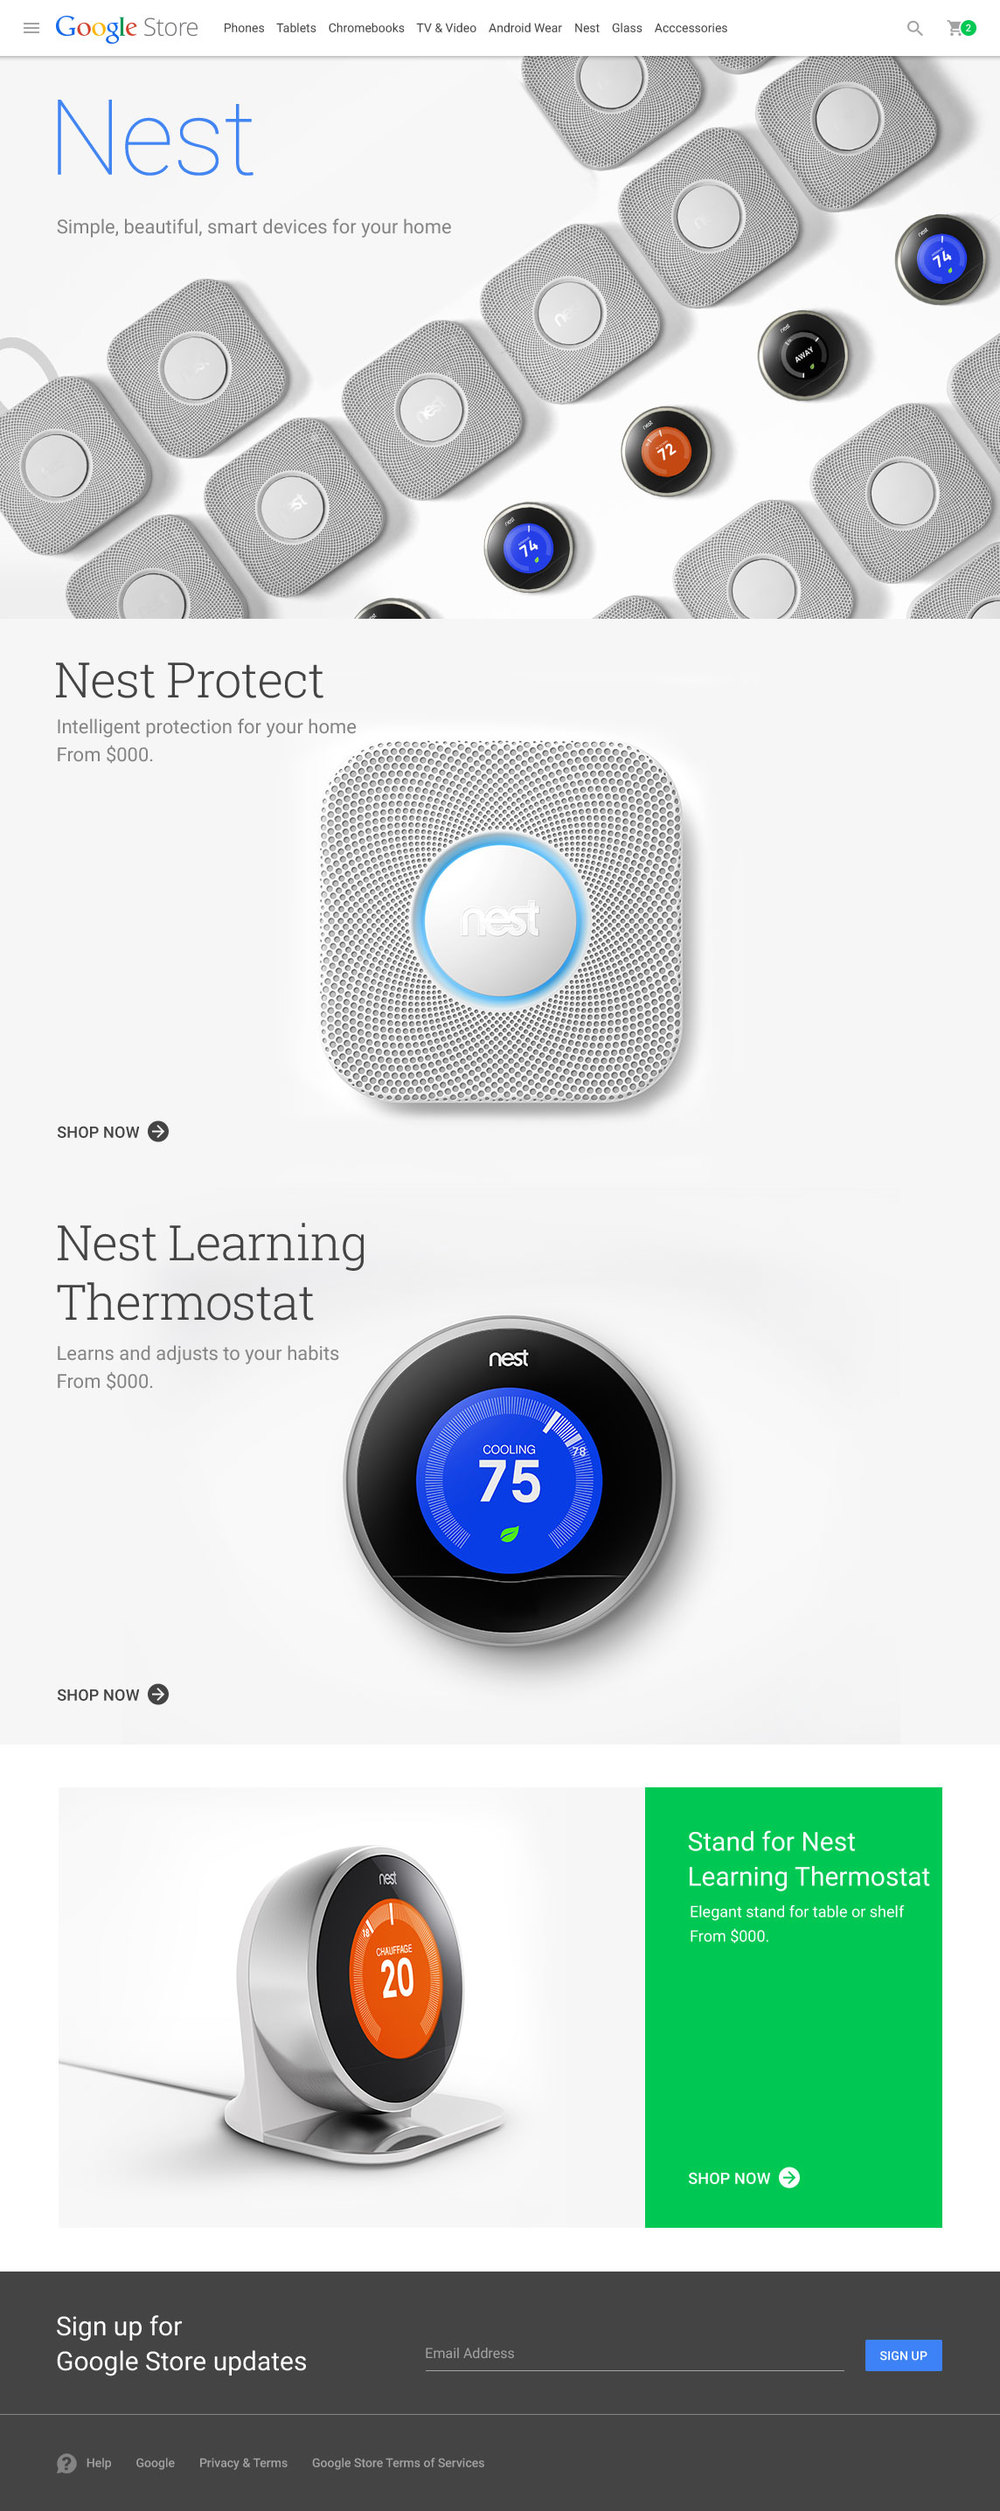 Nest Category Page